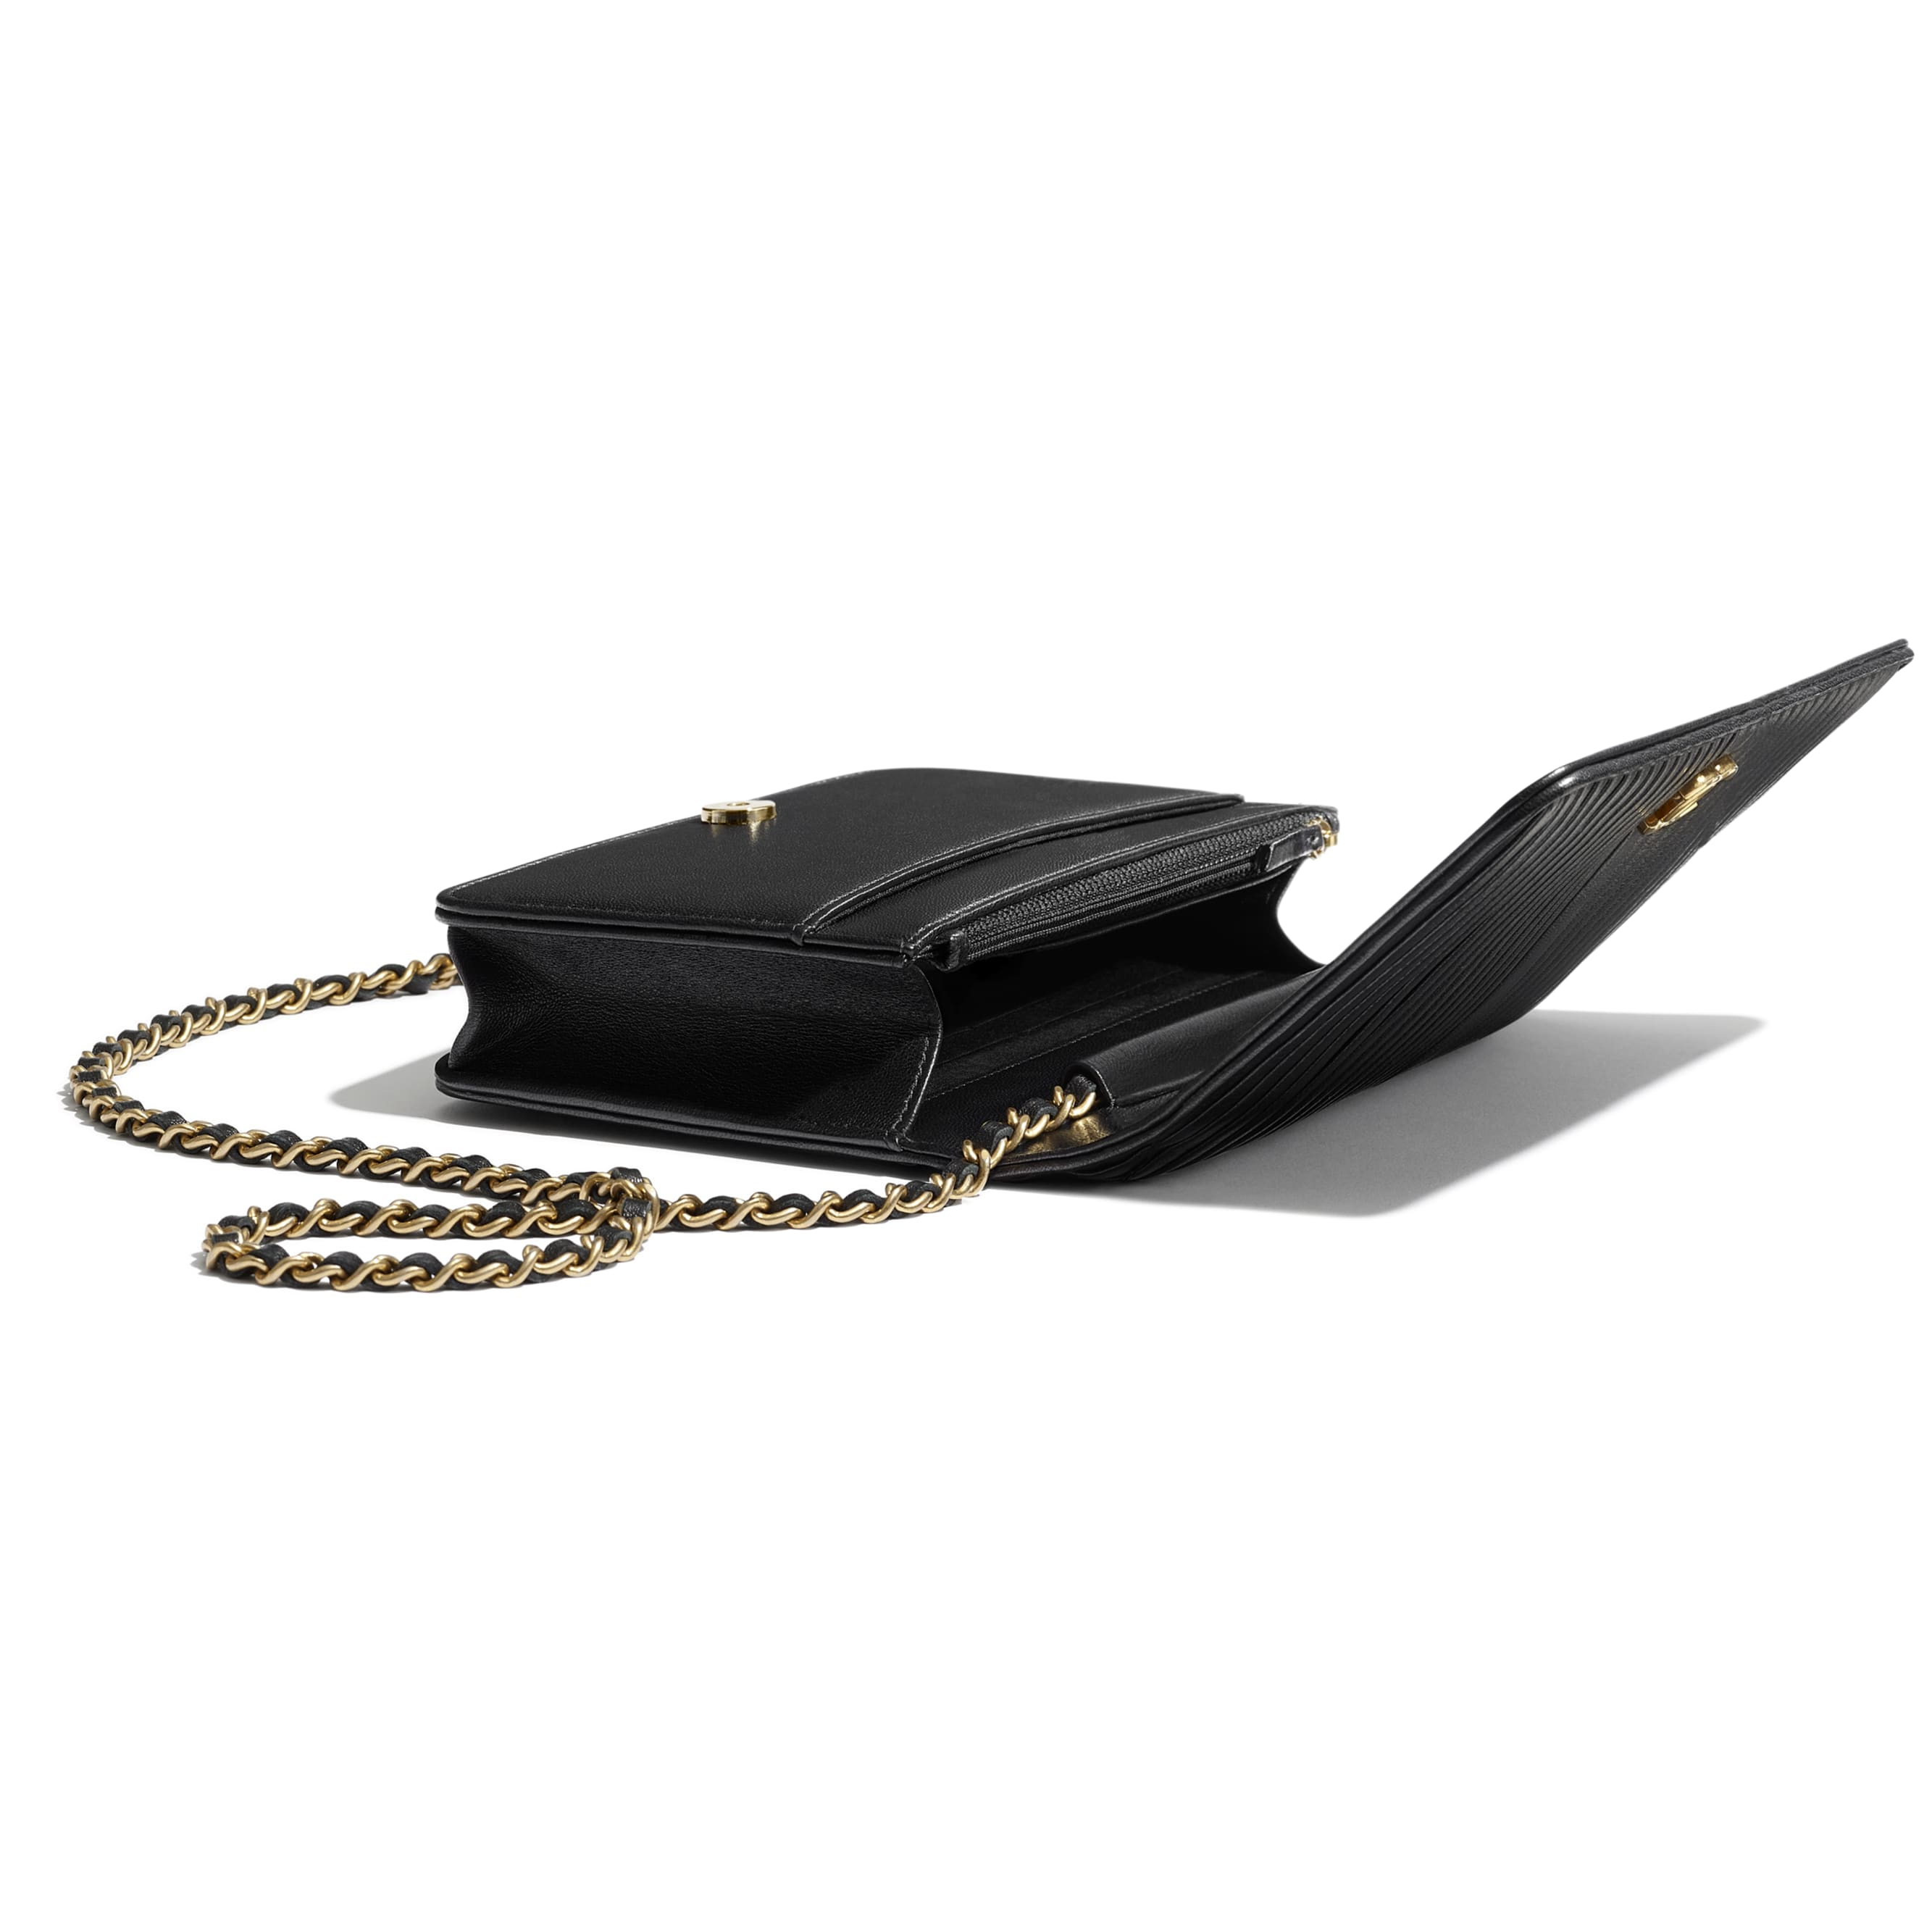 Wallet on Chain - Black - Lambskin, Imitation Pearls & Gold-Tone Metal - CHANEL - Extra view - see standard sized version